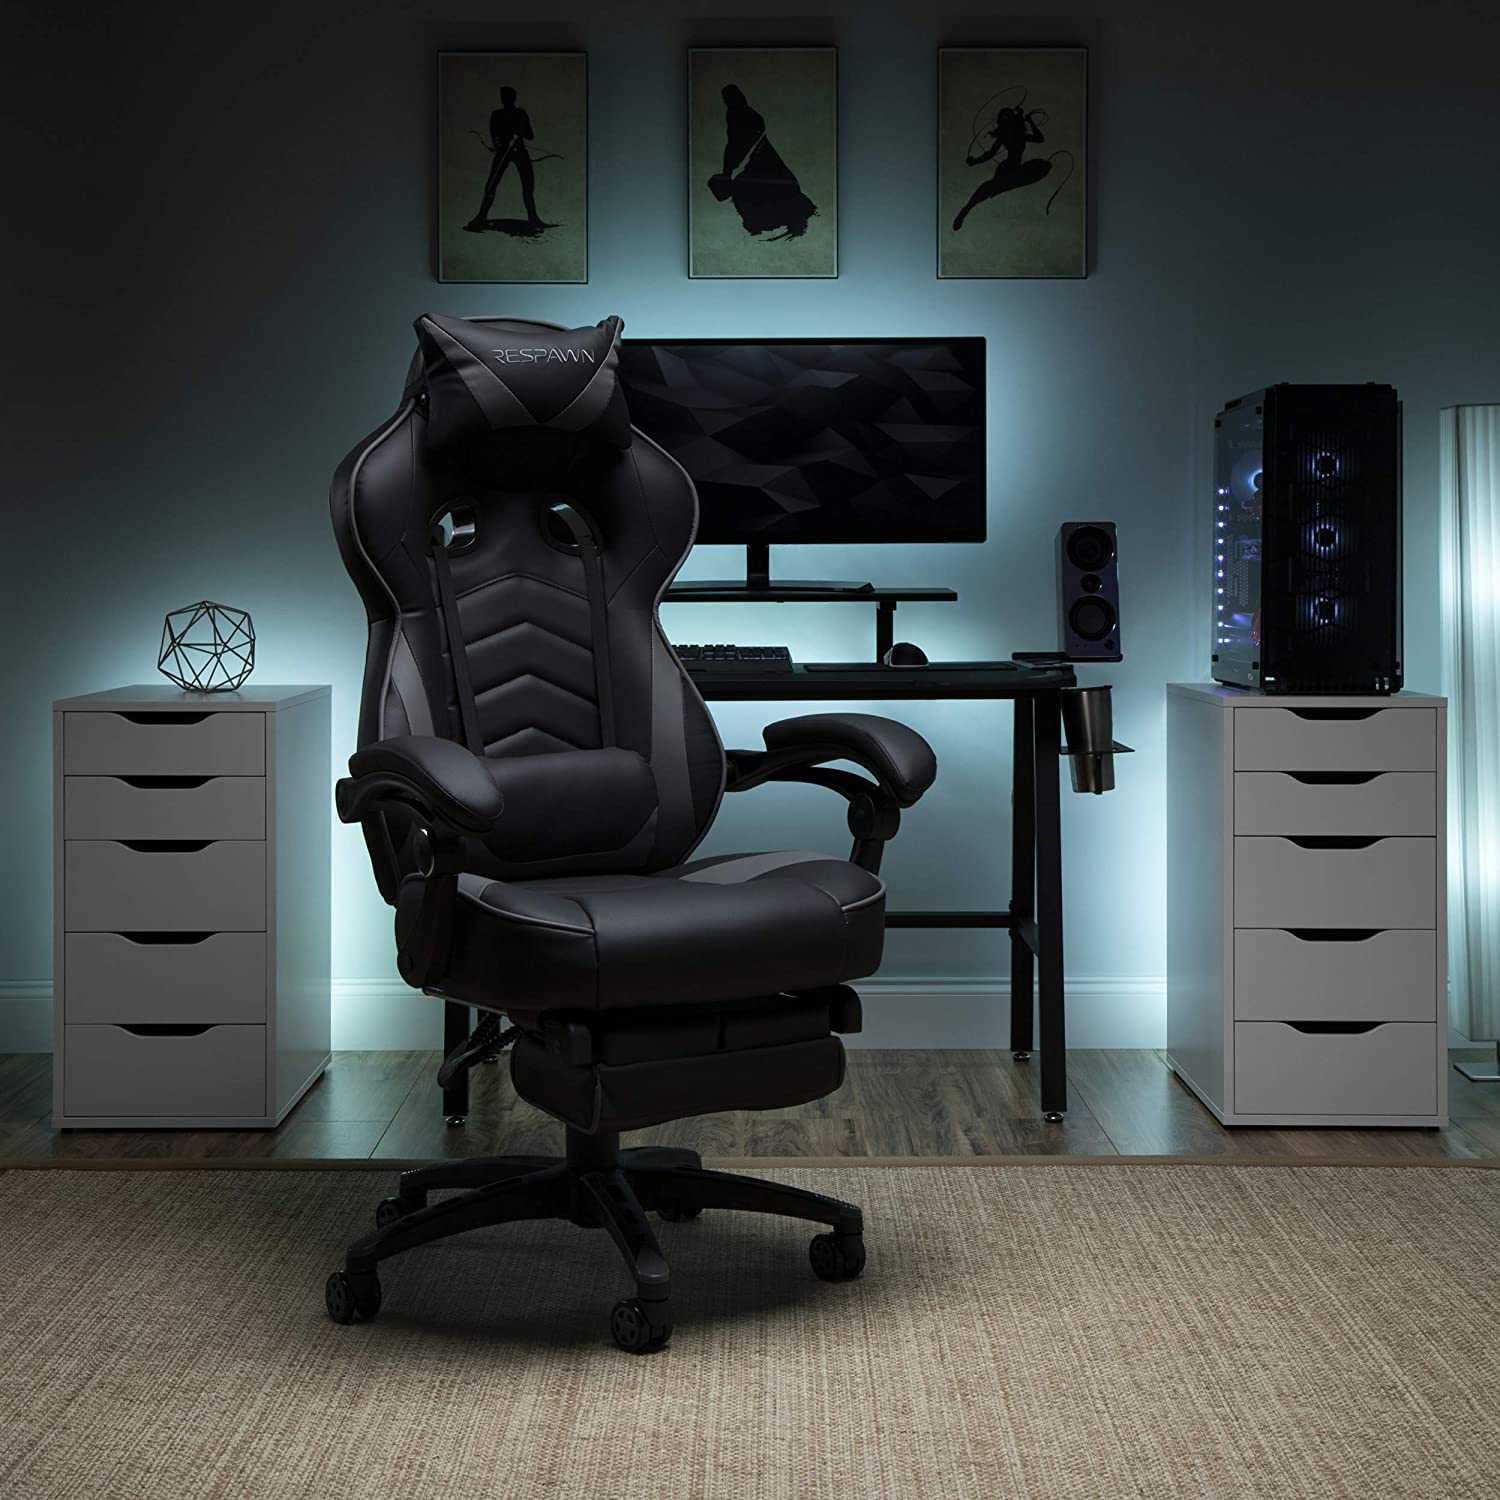 RESPAWN 110 Racing Style Gaming Chair, Reclining Ergonomic Leather Chair with Footrest